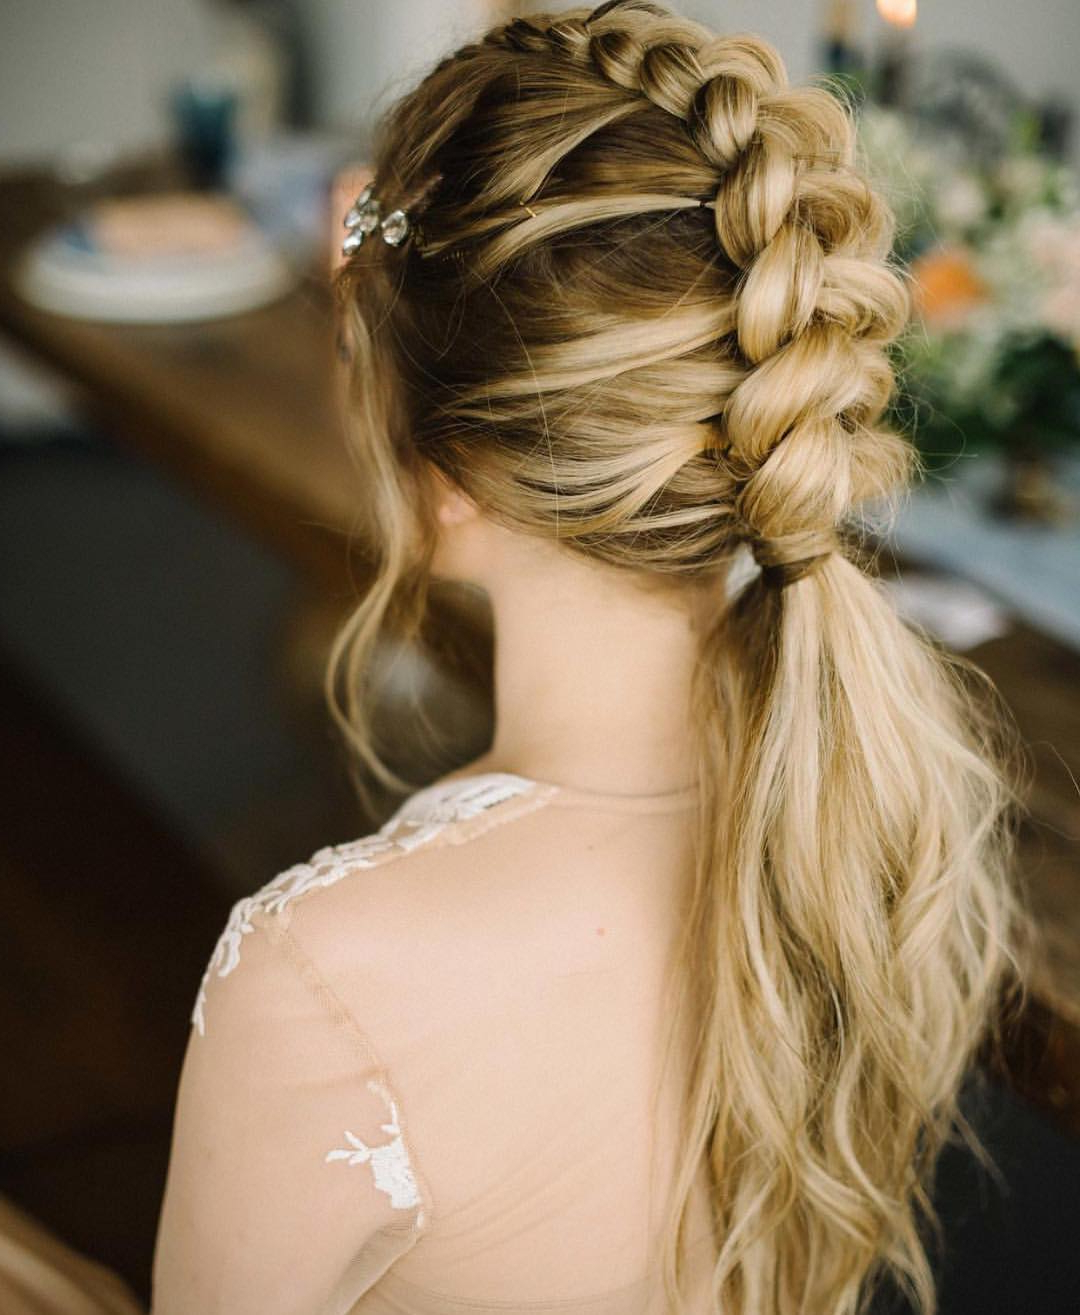 Well Known Long Blonde Braid Hairstyles Intended For 10 Braided Hairstyles For Long Hair – Weddings, Festivals (View 4 of 20)